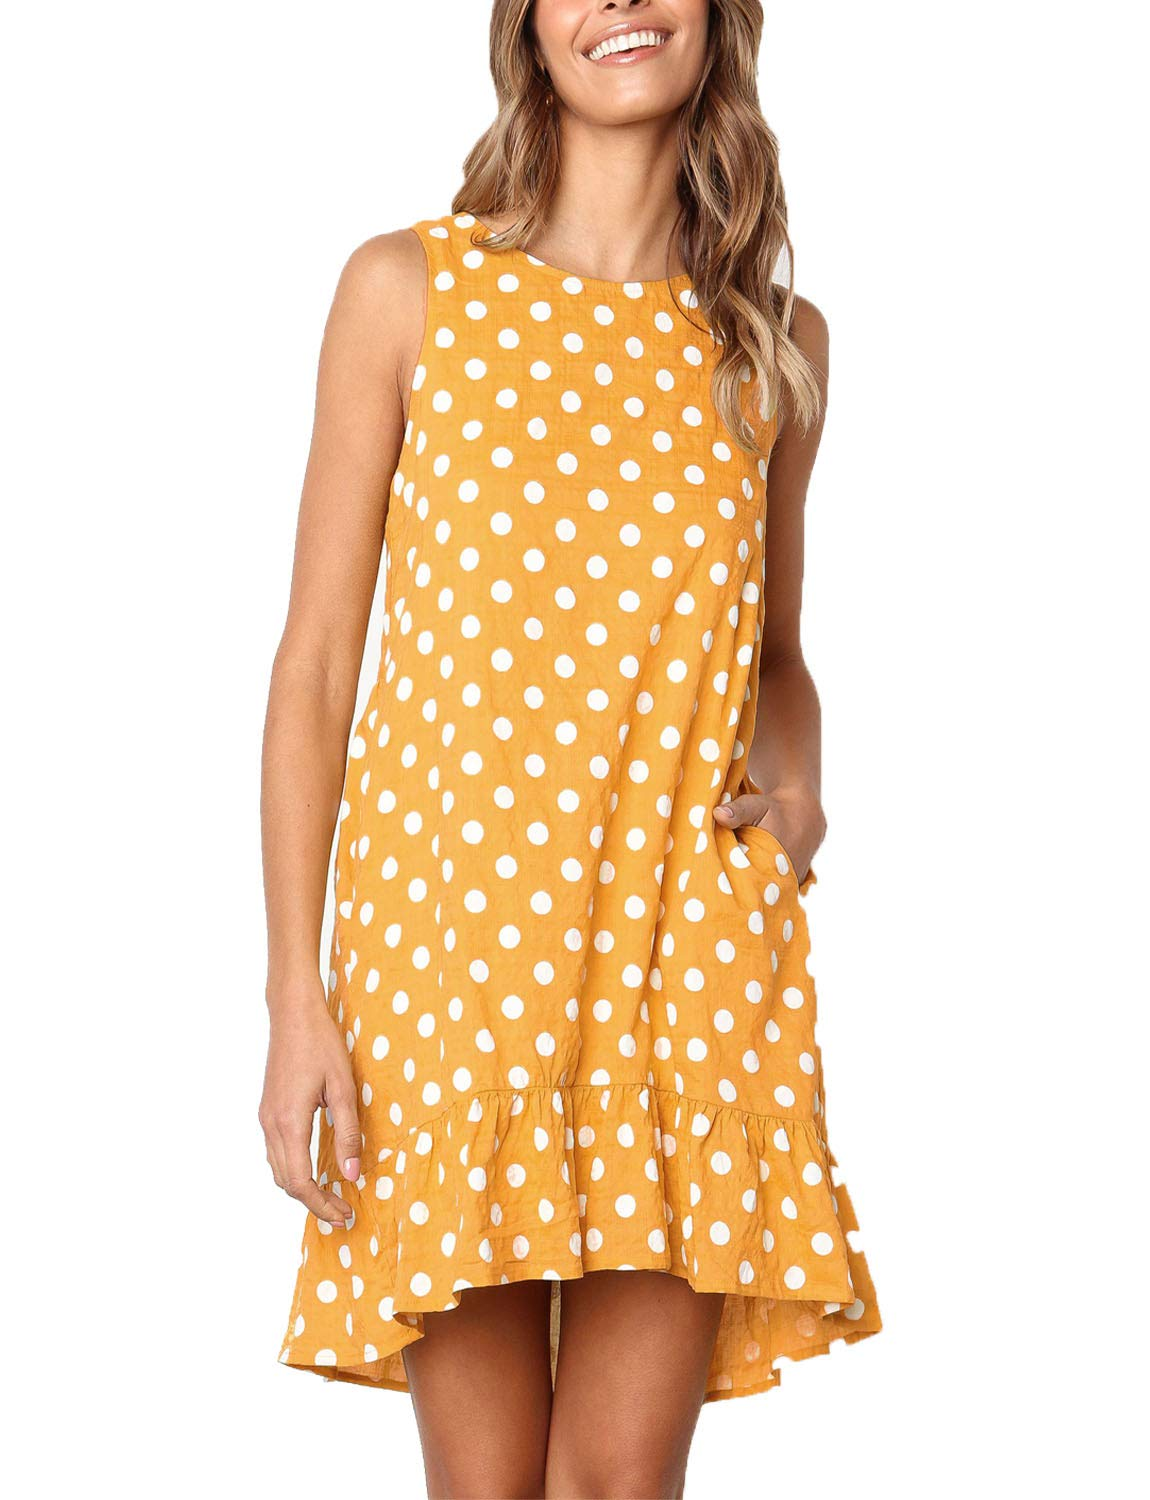 Available at Amazon: RULISHE Women's Casual Sleeveless Polka Dot Dress Ruffle Loose Swing T-Shirt Mini Dress with Side Pockets